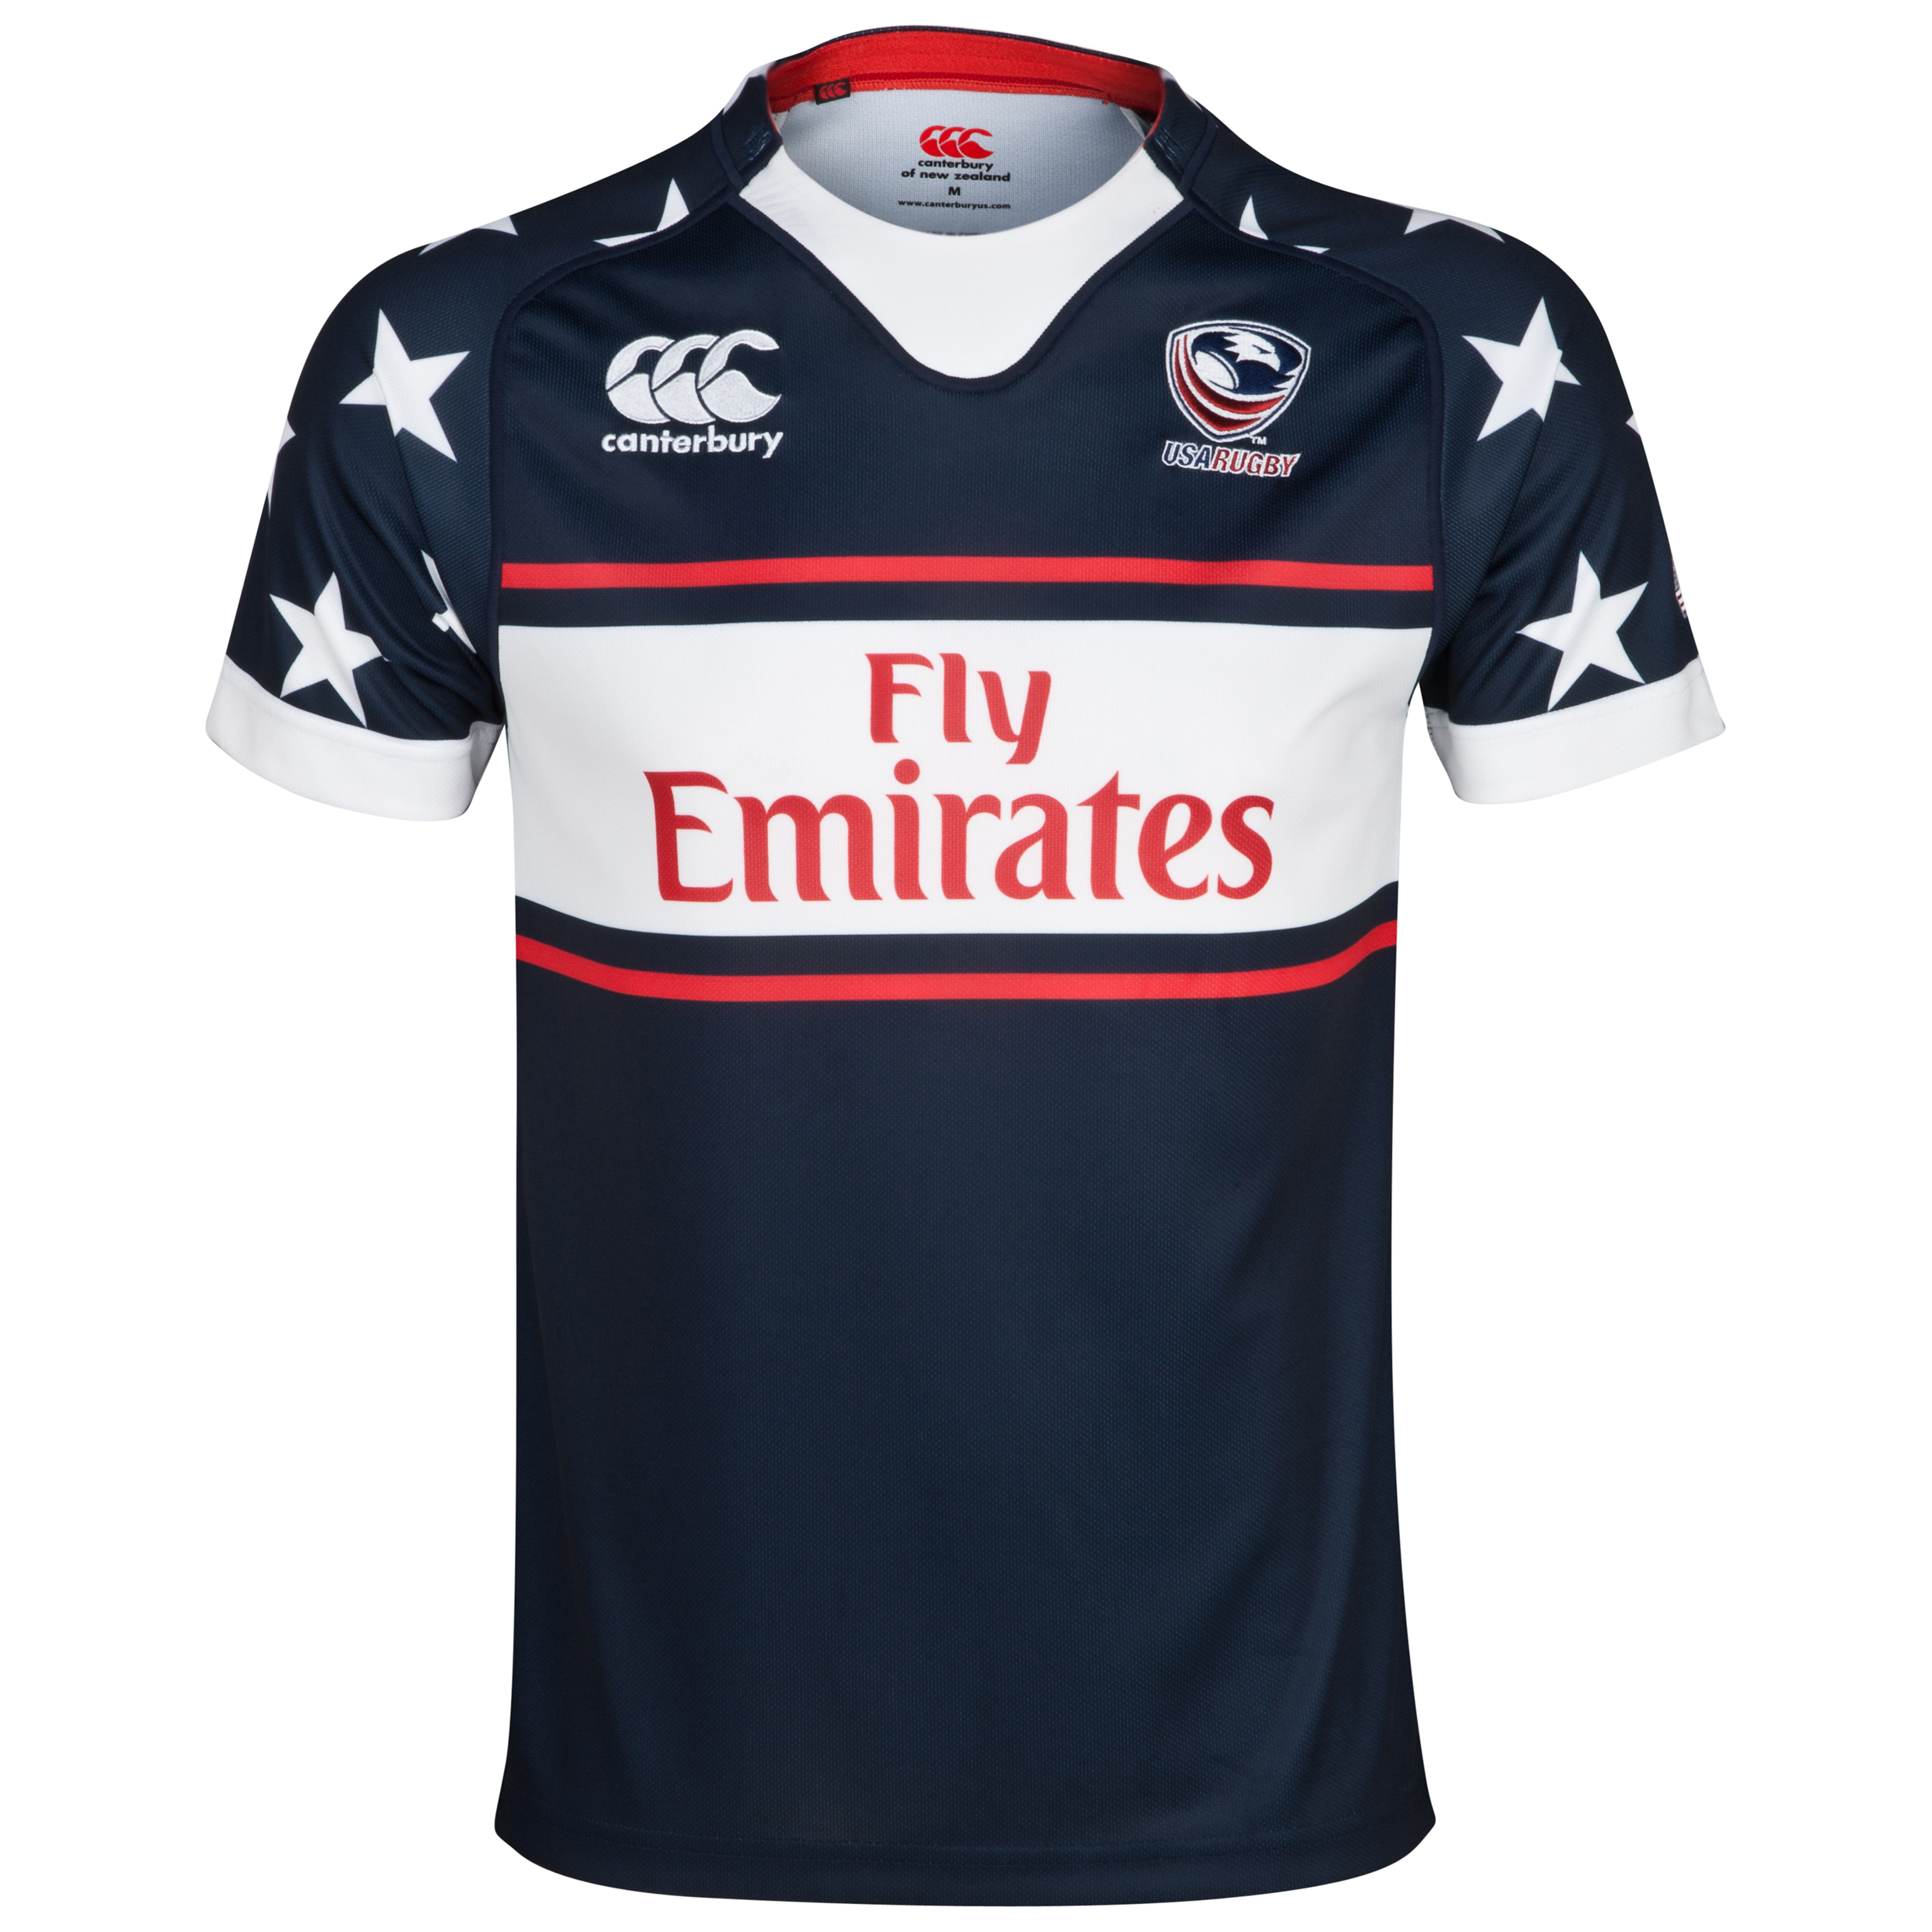 USA Eagles Alternate 7's Rugby Pro Shirt 2013/14